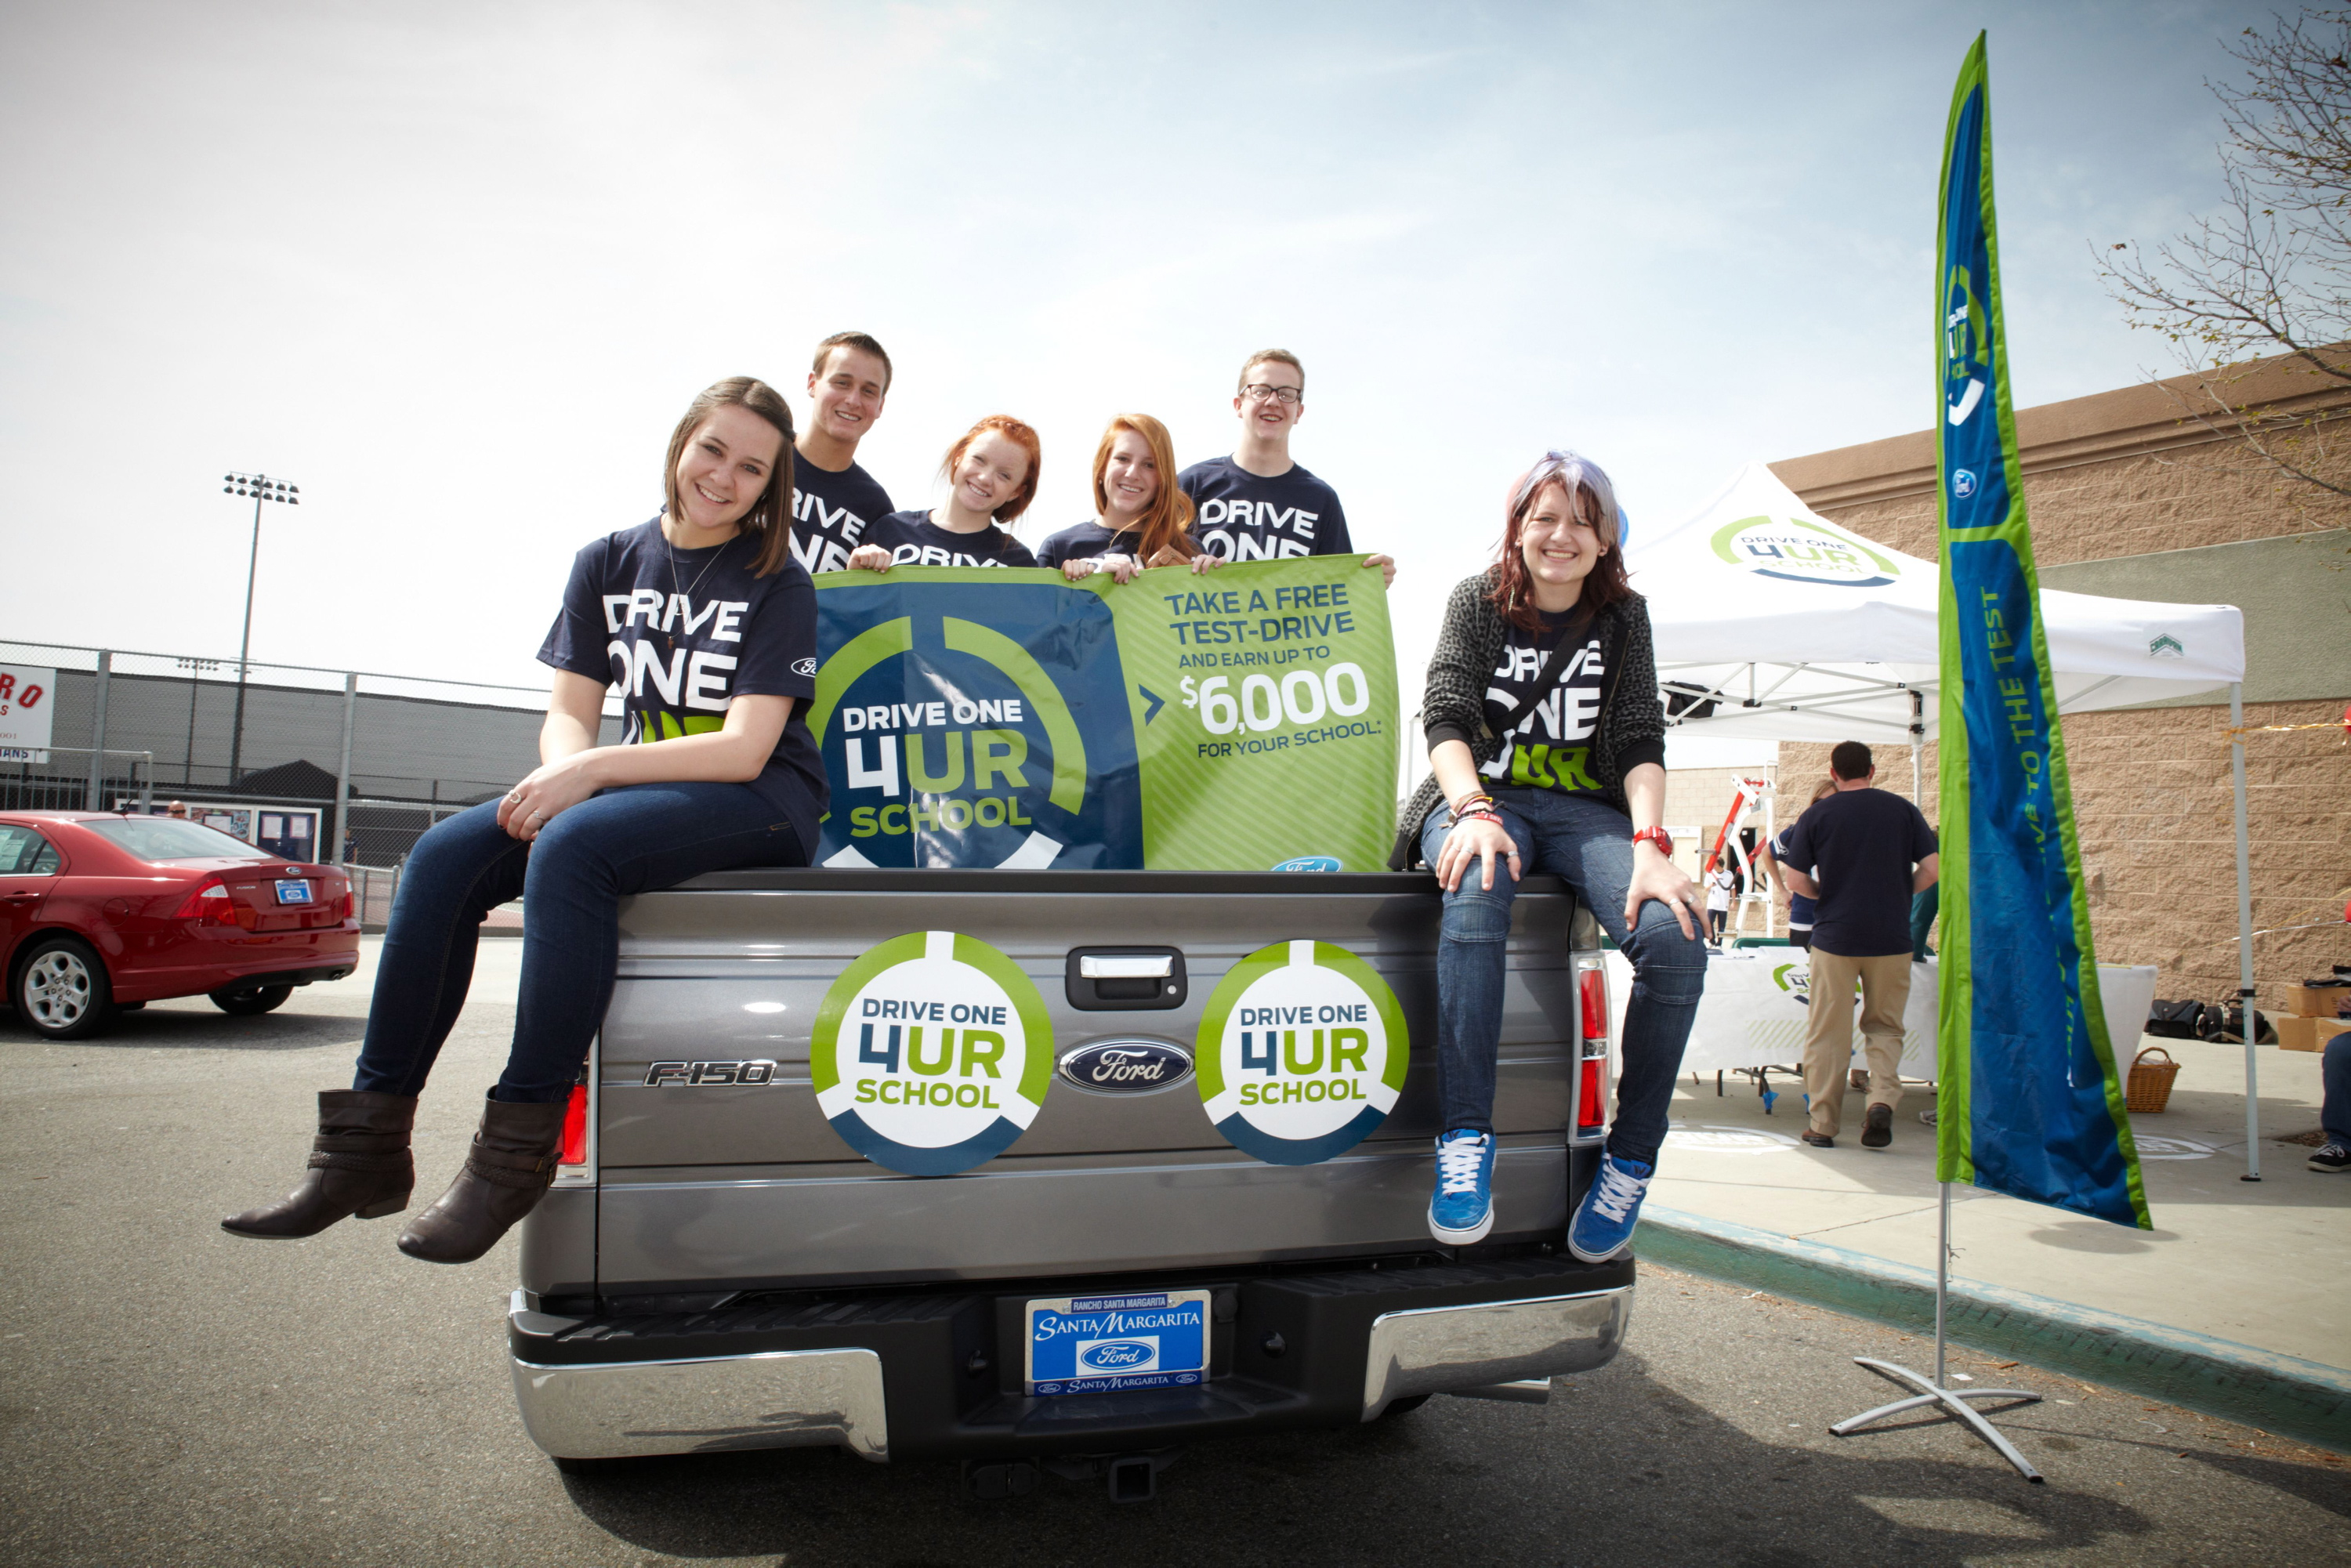 Ford Debuts Drive 4 UR munity To Raise Funds For Charity